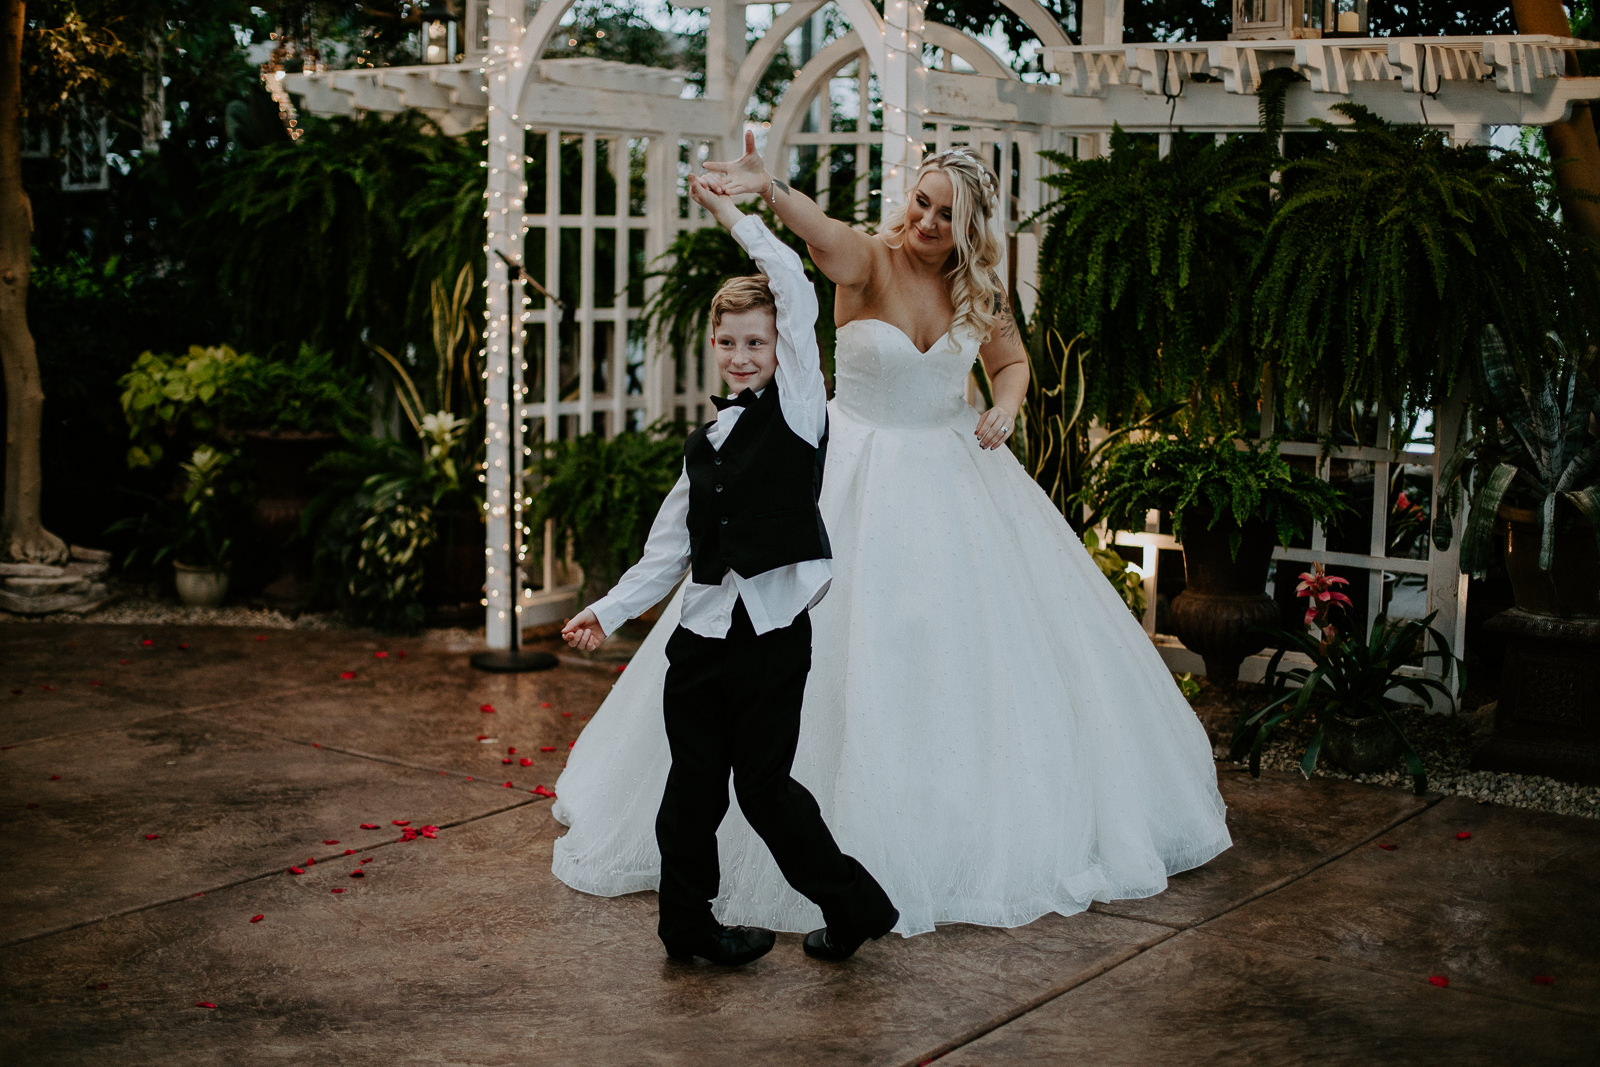 Bride twirling her son dancing during wedding reception